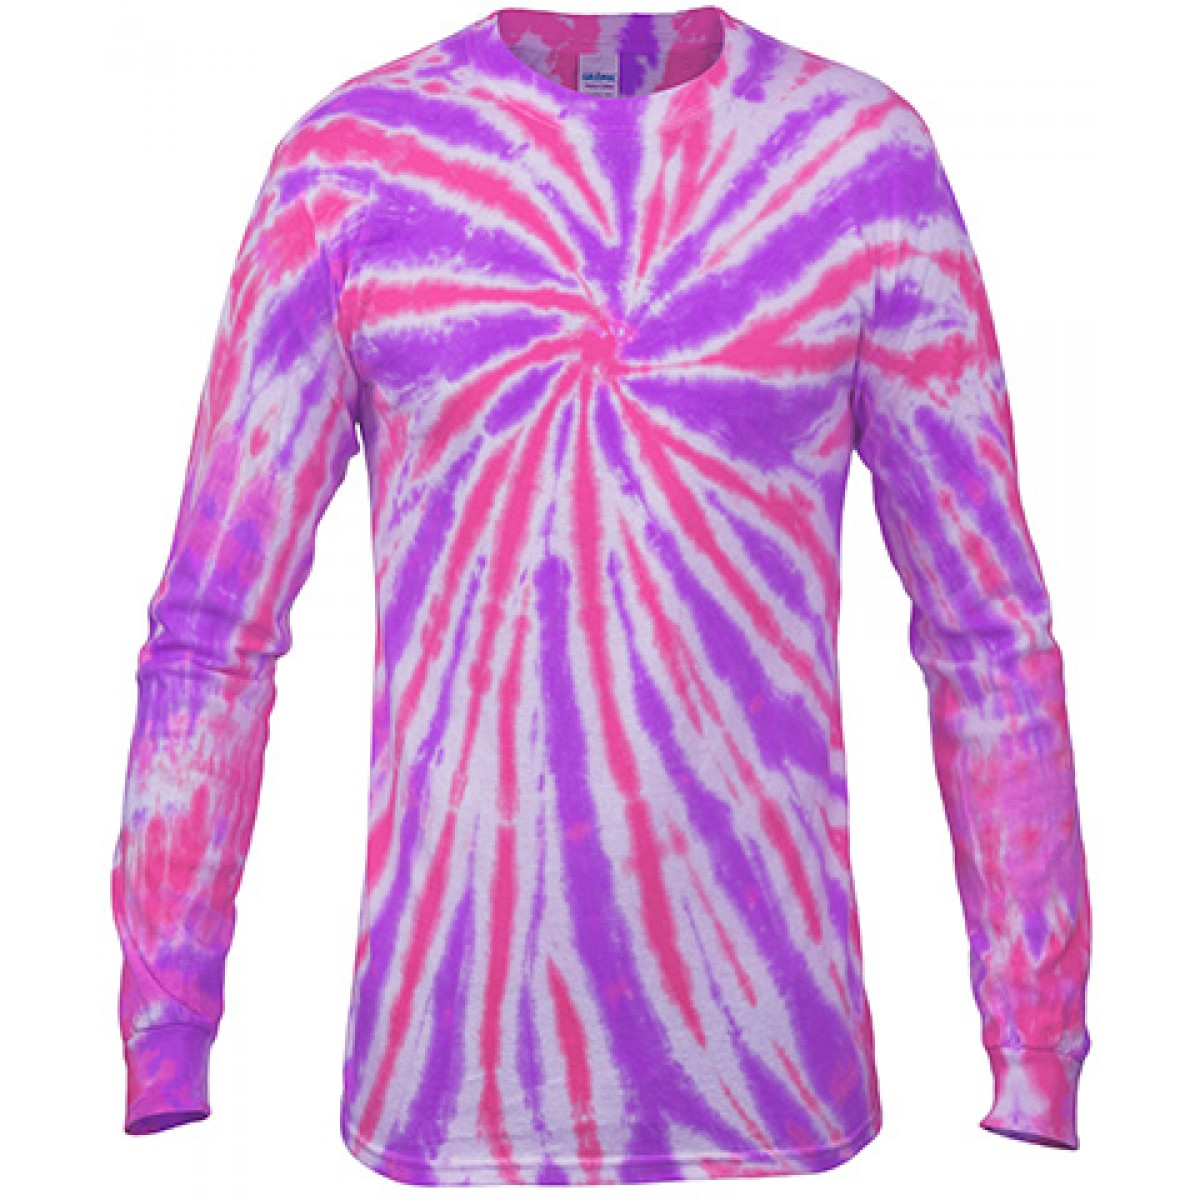 Multi Color Tie-Dye Long Sleeve Shirt -Purple-XL